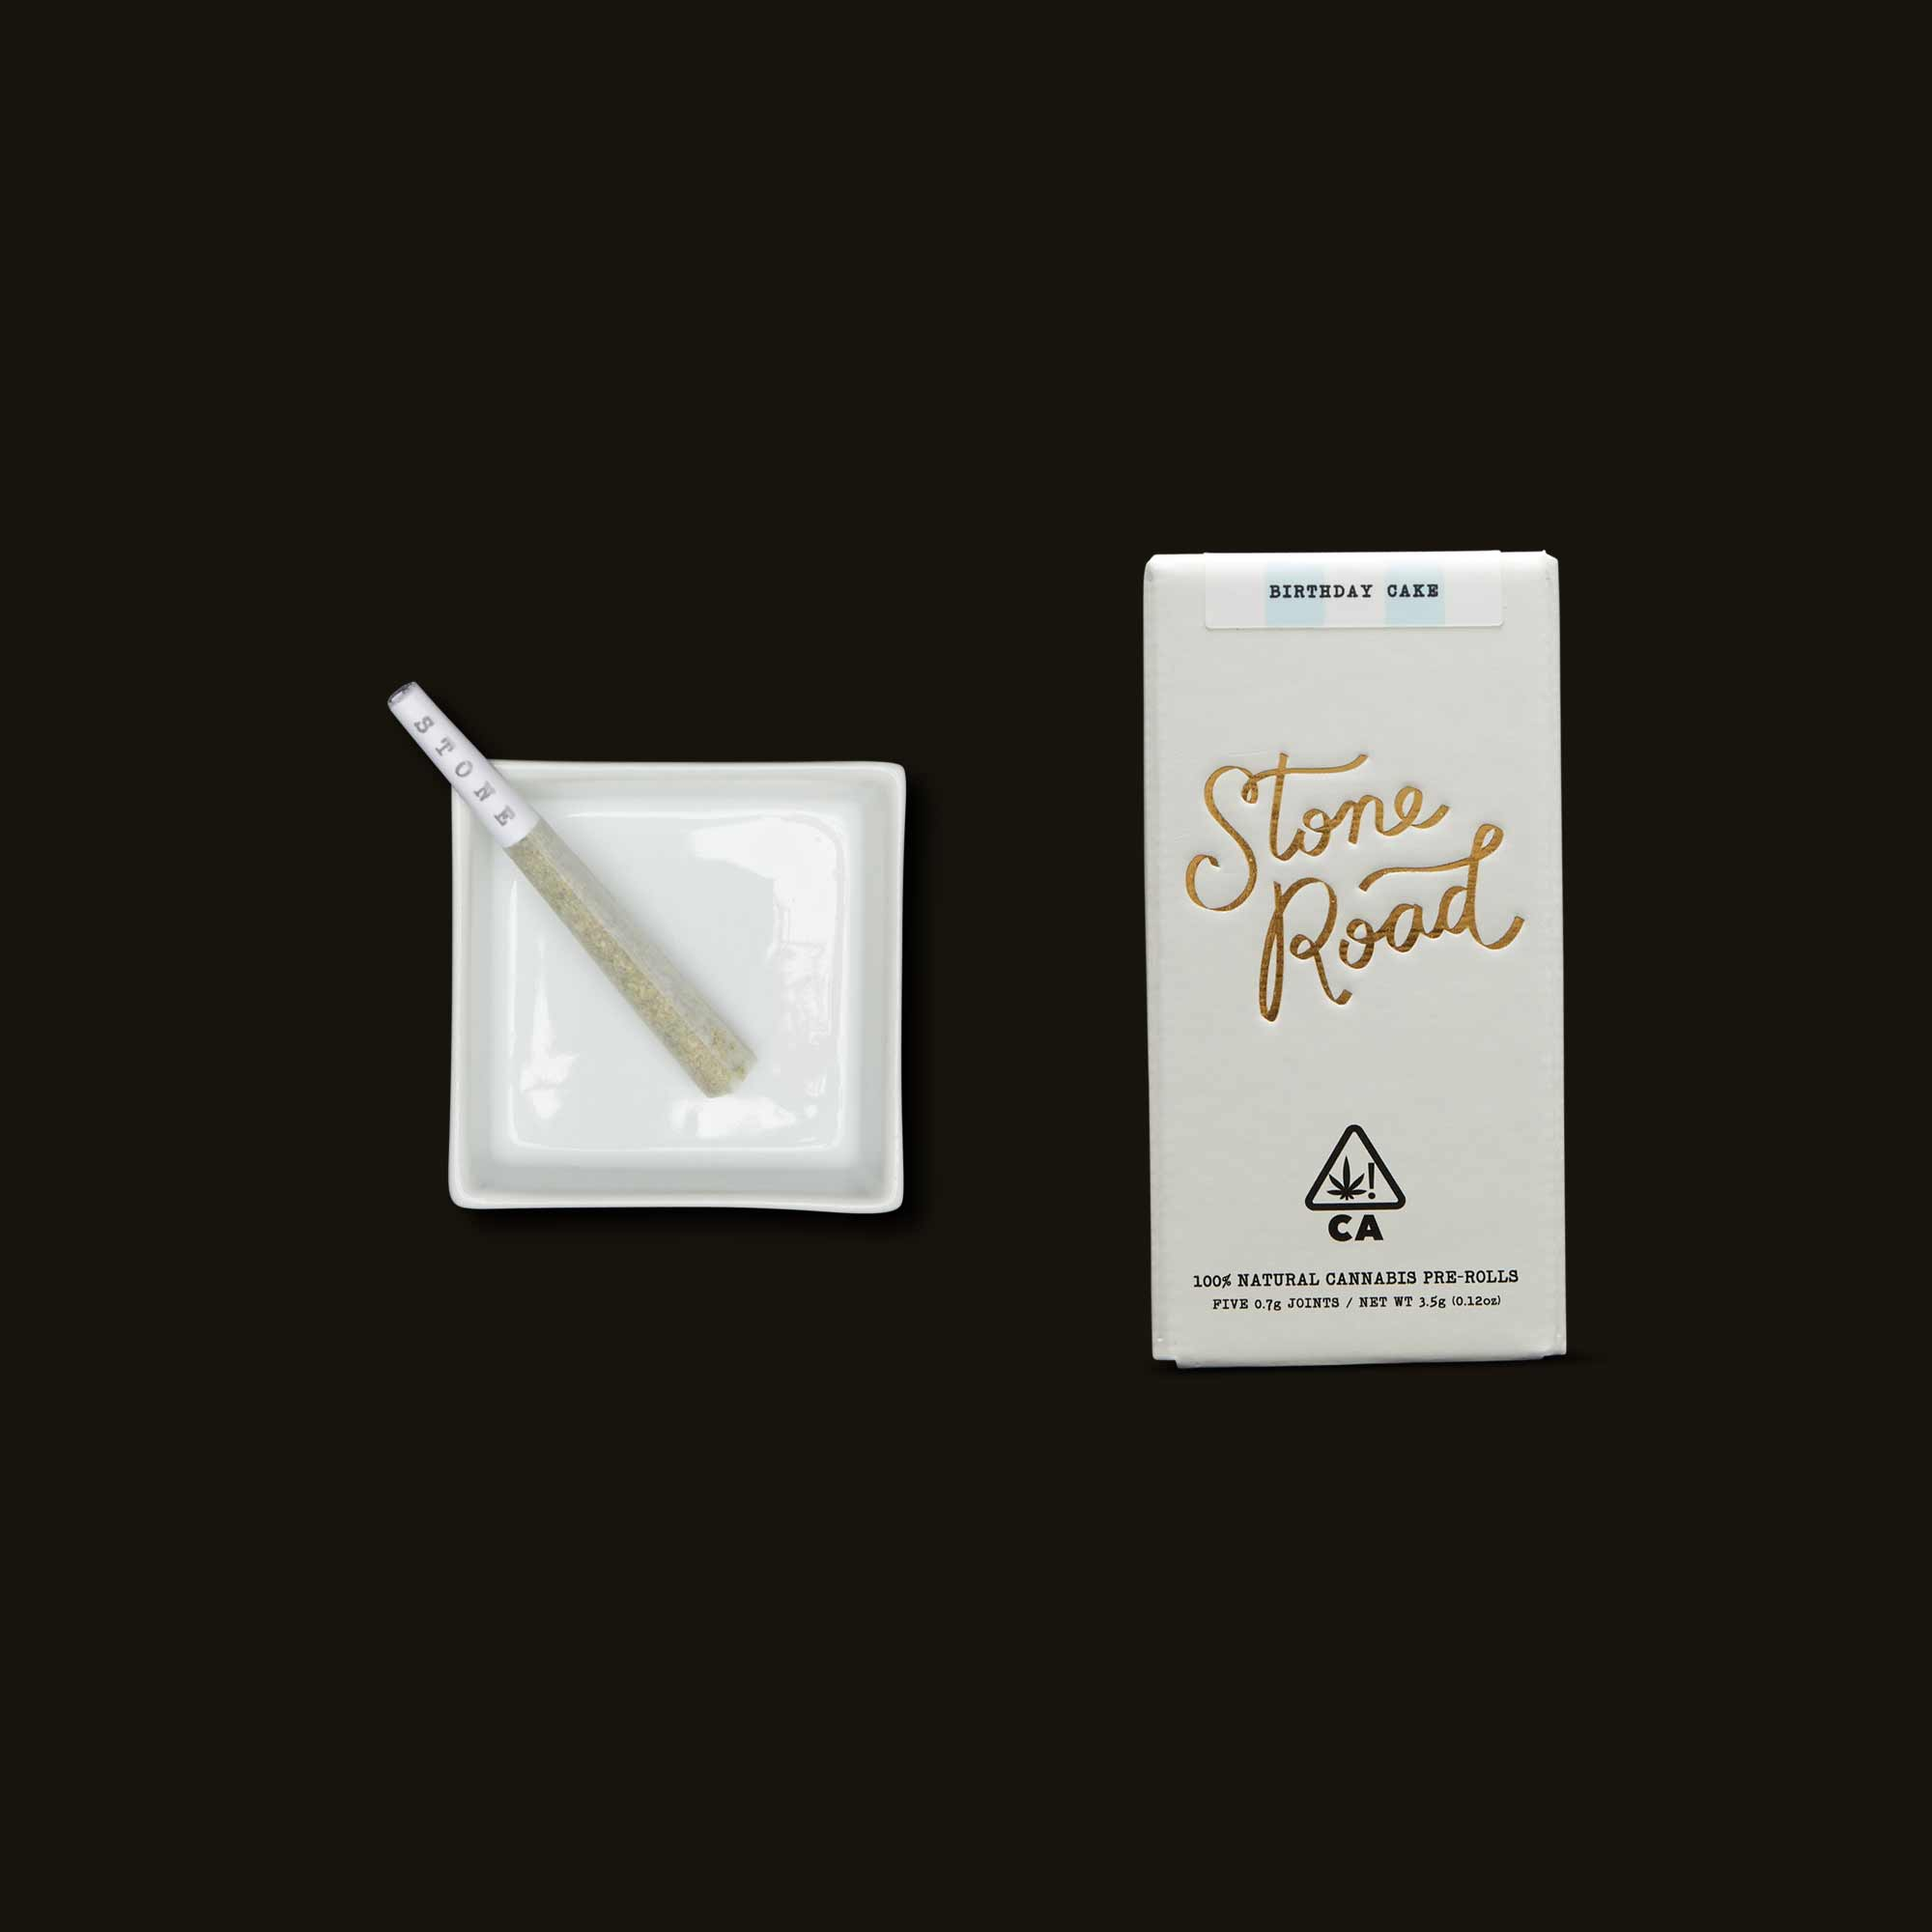 Stone Road Birthday Cake Pre-Roll Pack